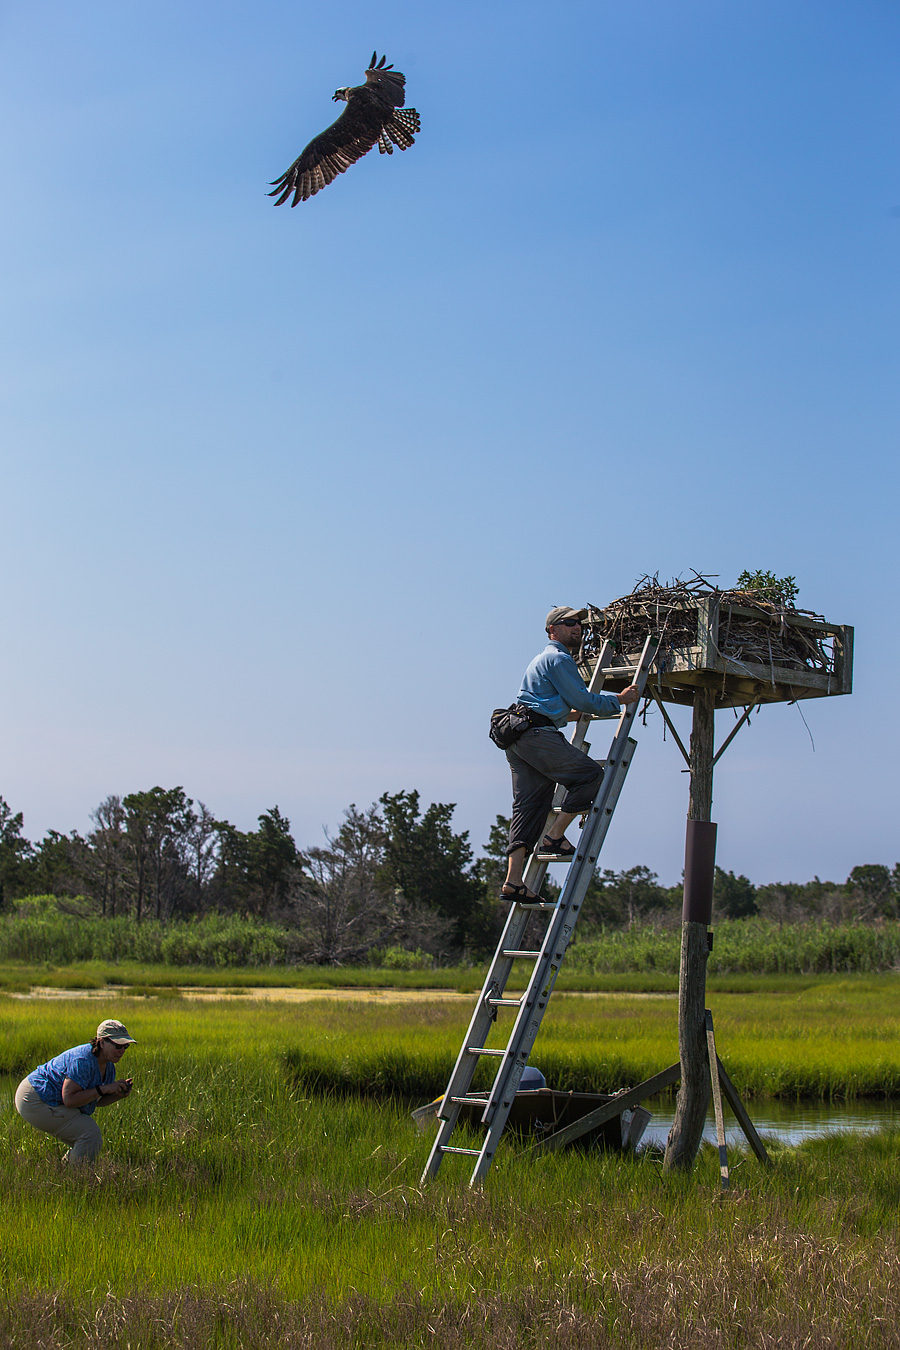 But for a first visitor to an Osprey's nest, the experience can be a little.... exhilarating